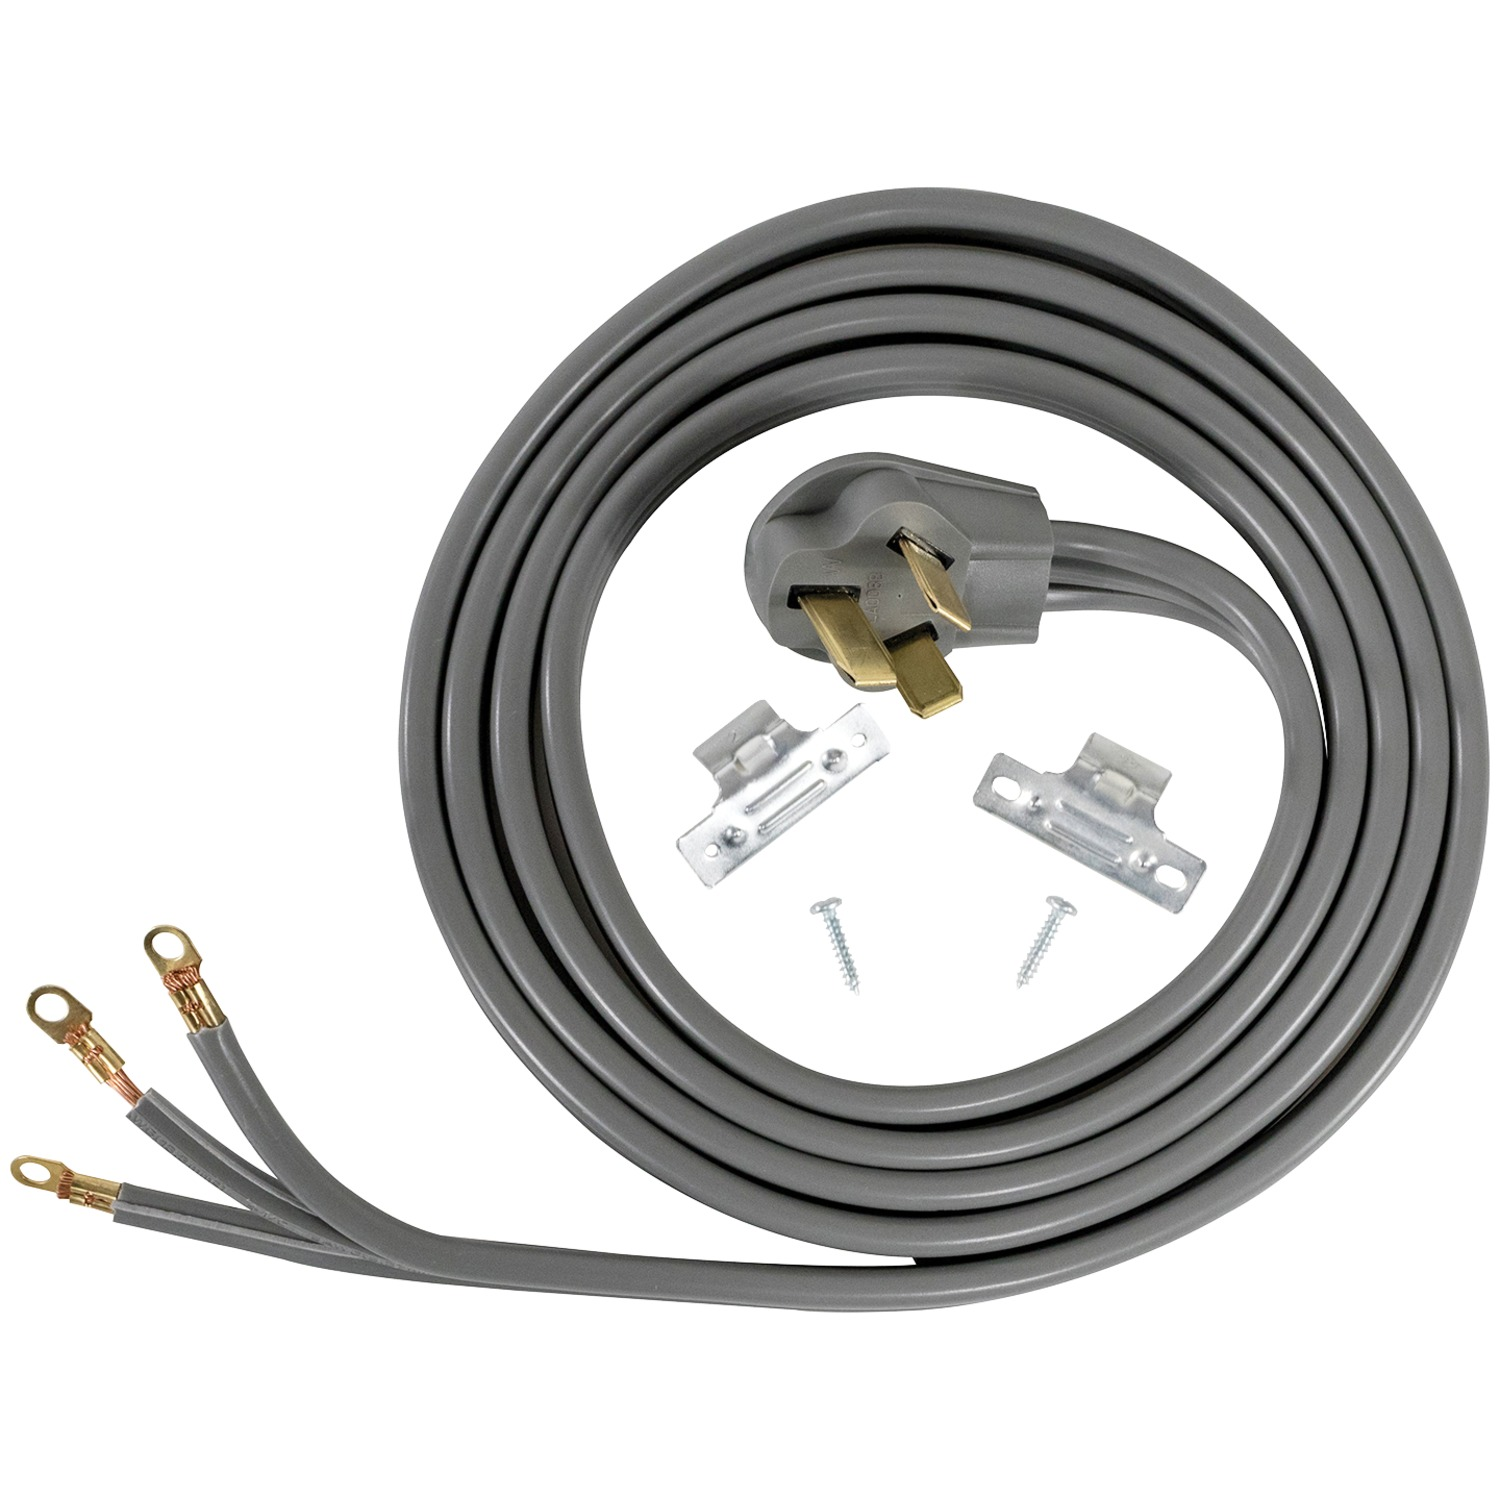 Certified Appliance Accessories 90-1088 3-Wire Closed-Eyelet 50-Amp ...